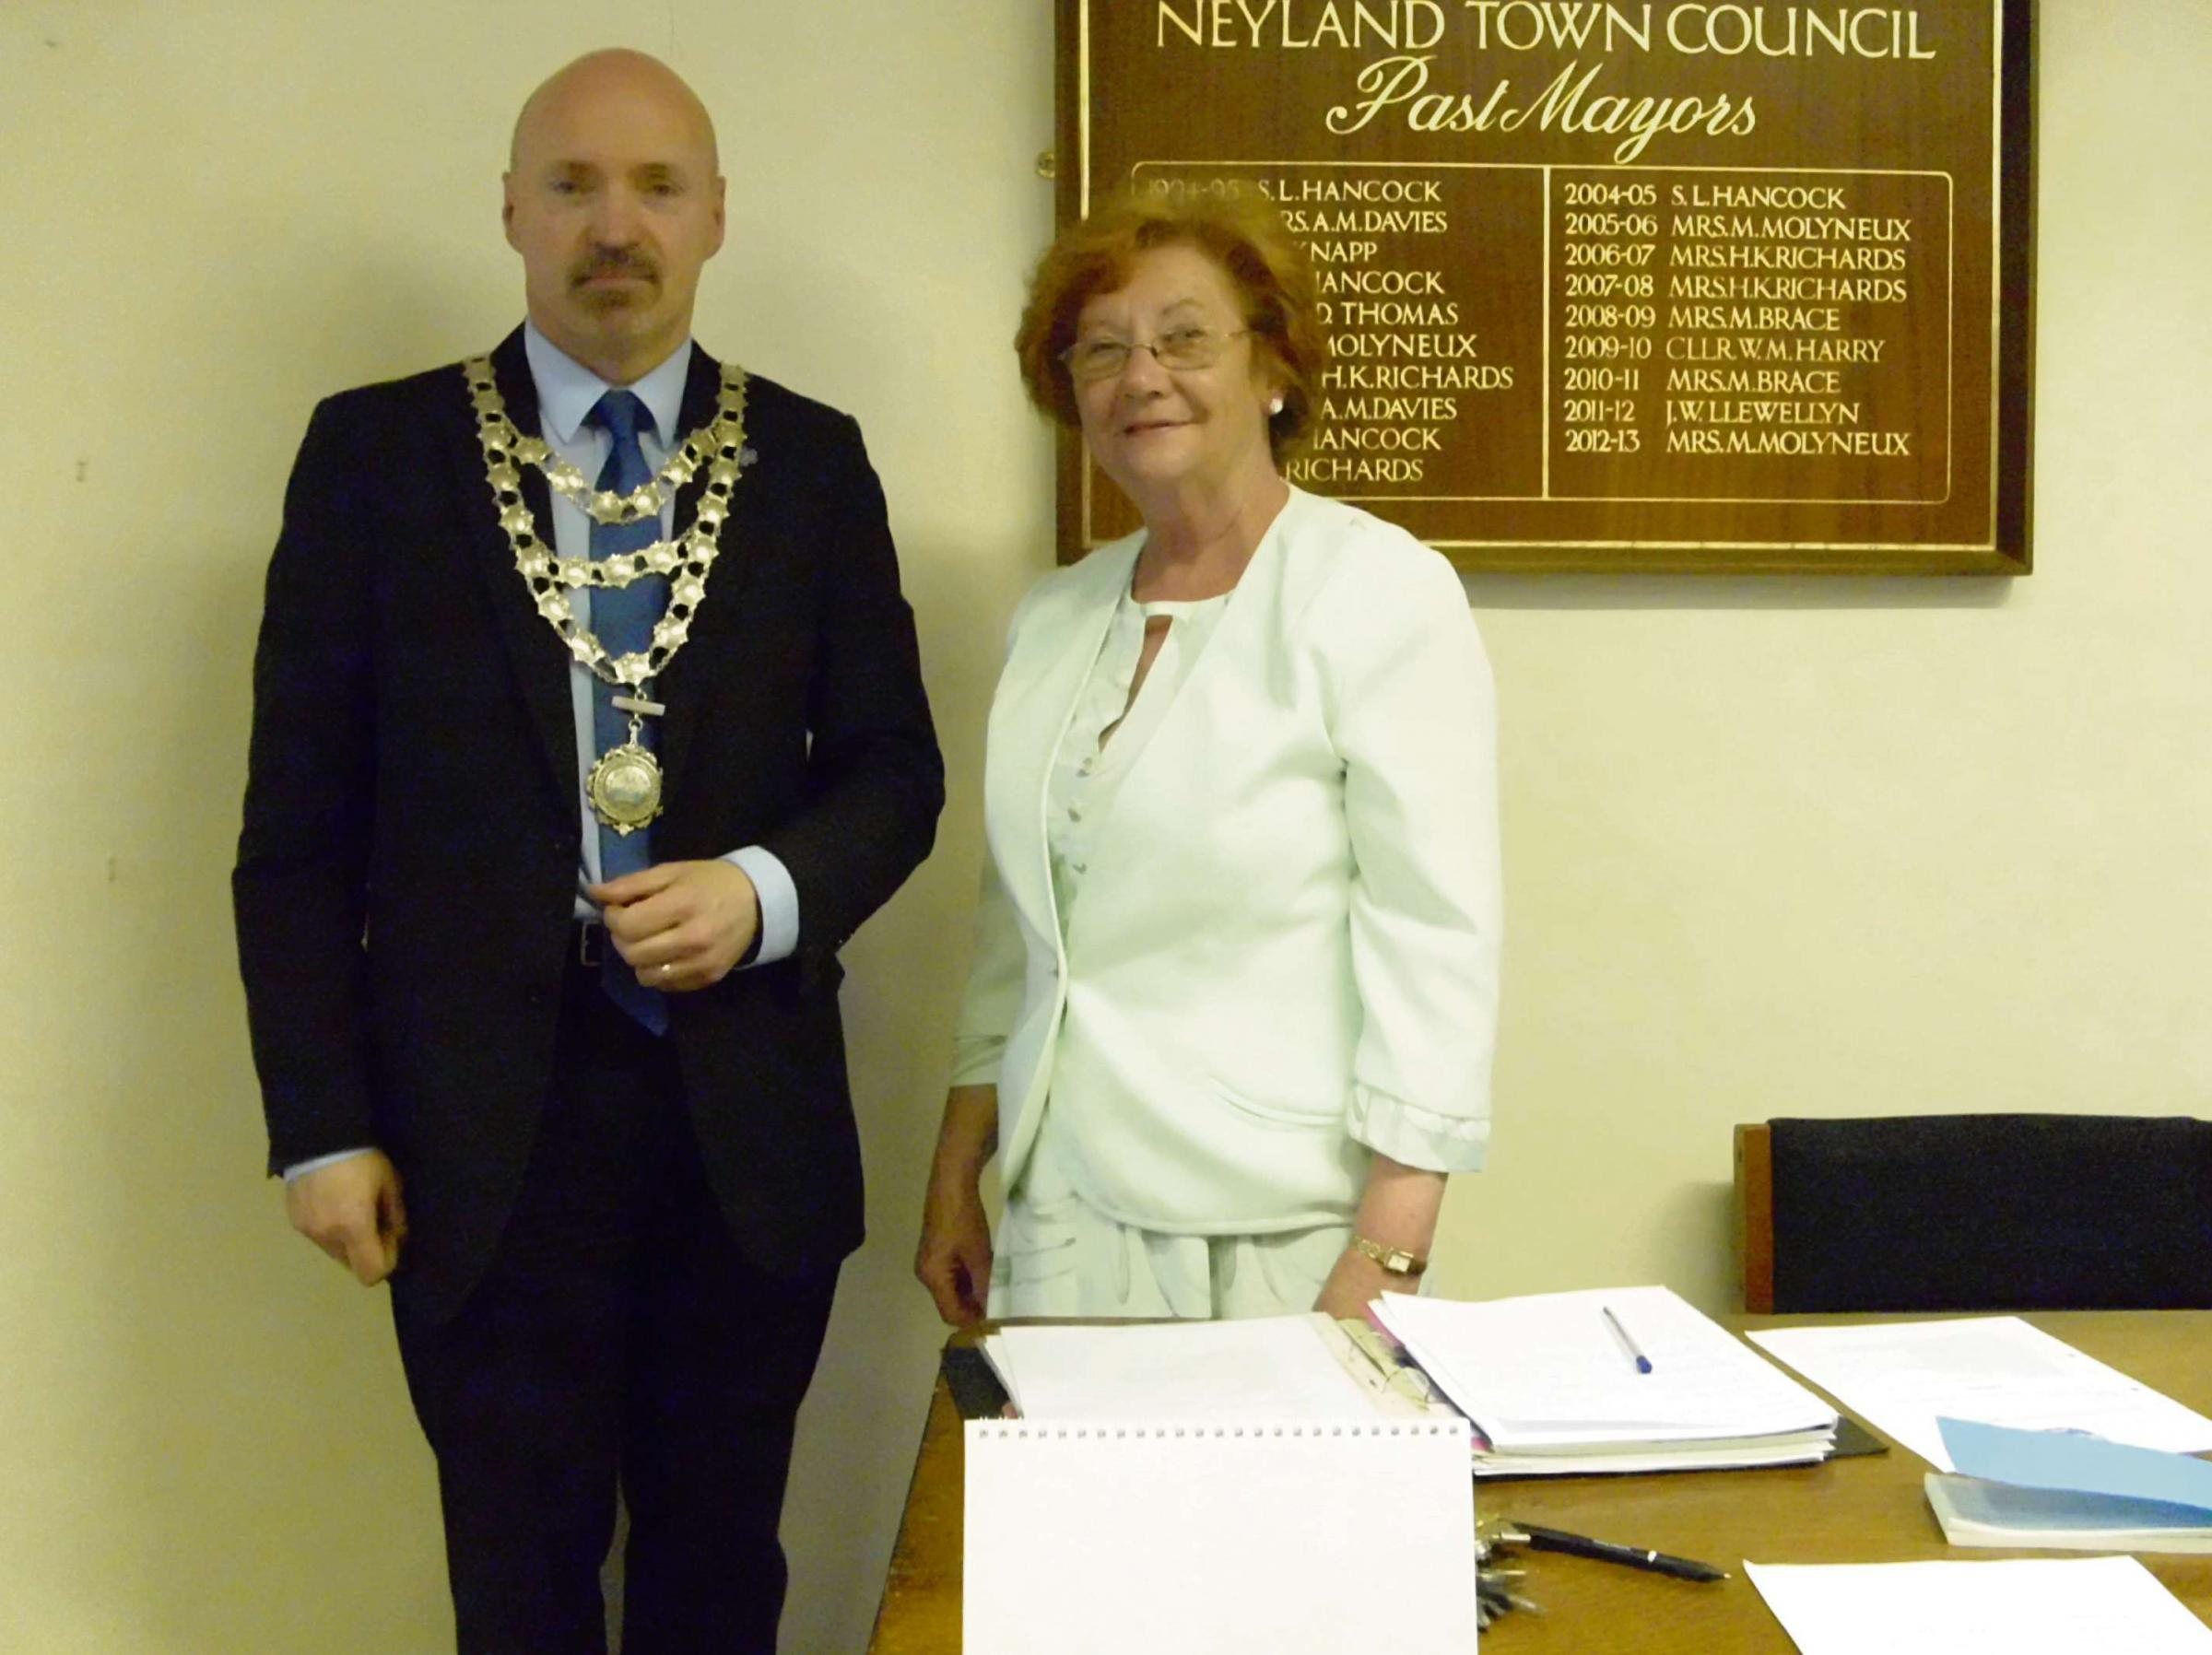 ALL CHAIN-GE: Cllr Maureen Molyneux has offically retired from Neyland Town Council, handing over to new Mayor, Cllr Simon Hancock. (6820678)